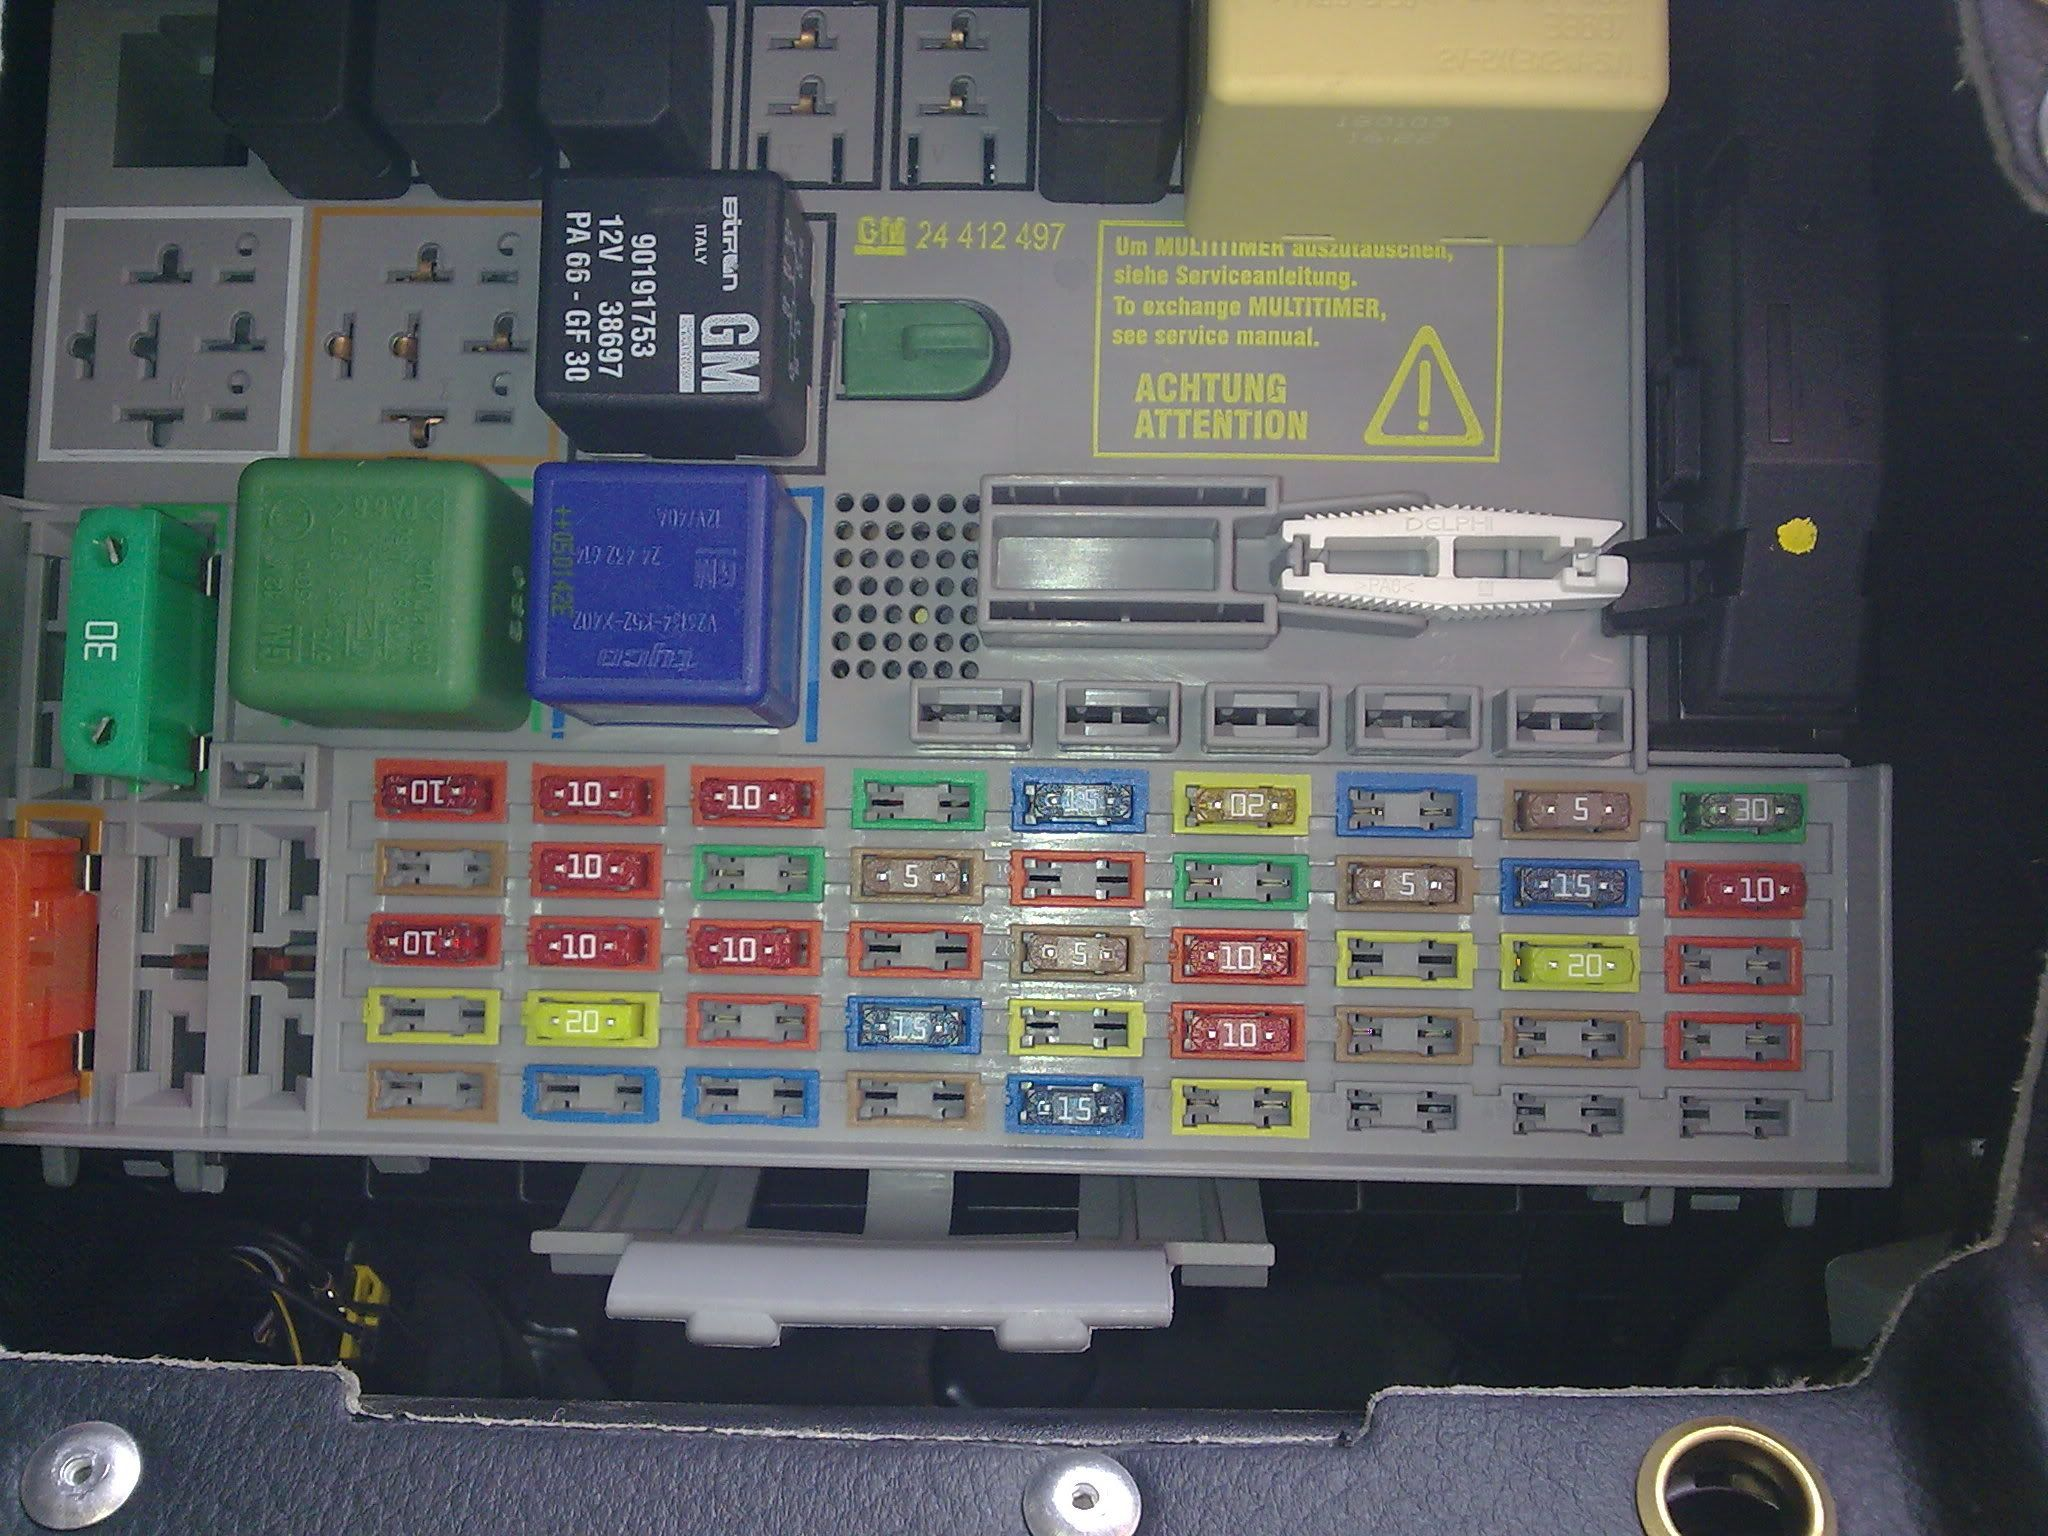 81cc4b547515edcd7c4059702fd3c90a img photobucket com albums v333 leesturbo image597 jpg vauxhall zafira fuse box diagram 2004 at aneh.co